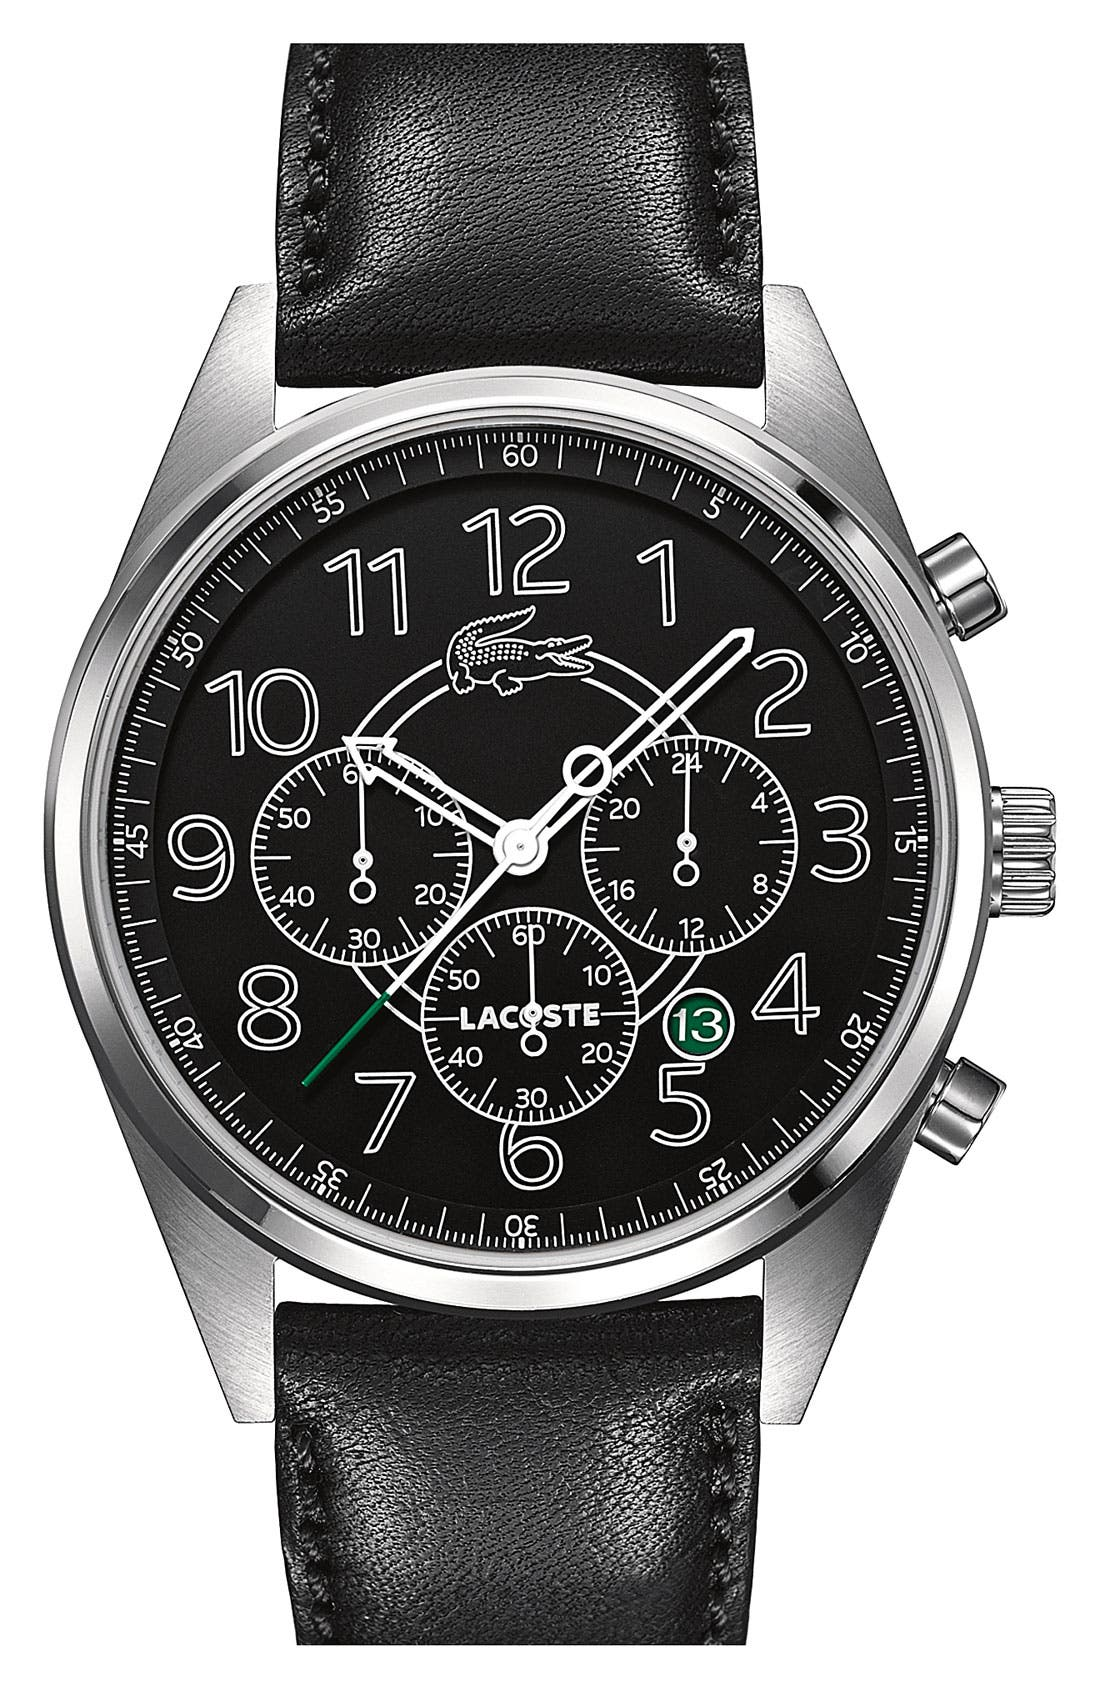 Main Image - Lacoste 'Zaragoza' Chronograph Leather Strap Watch